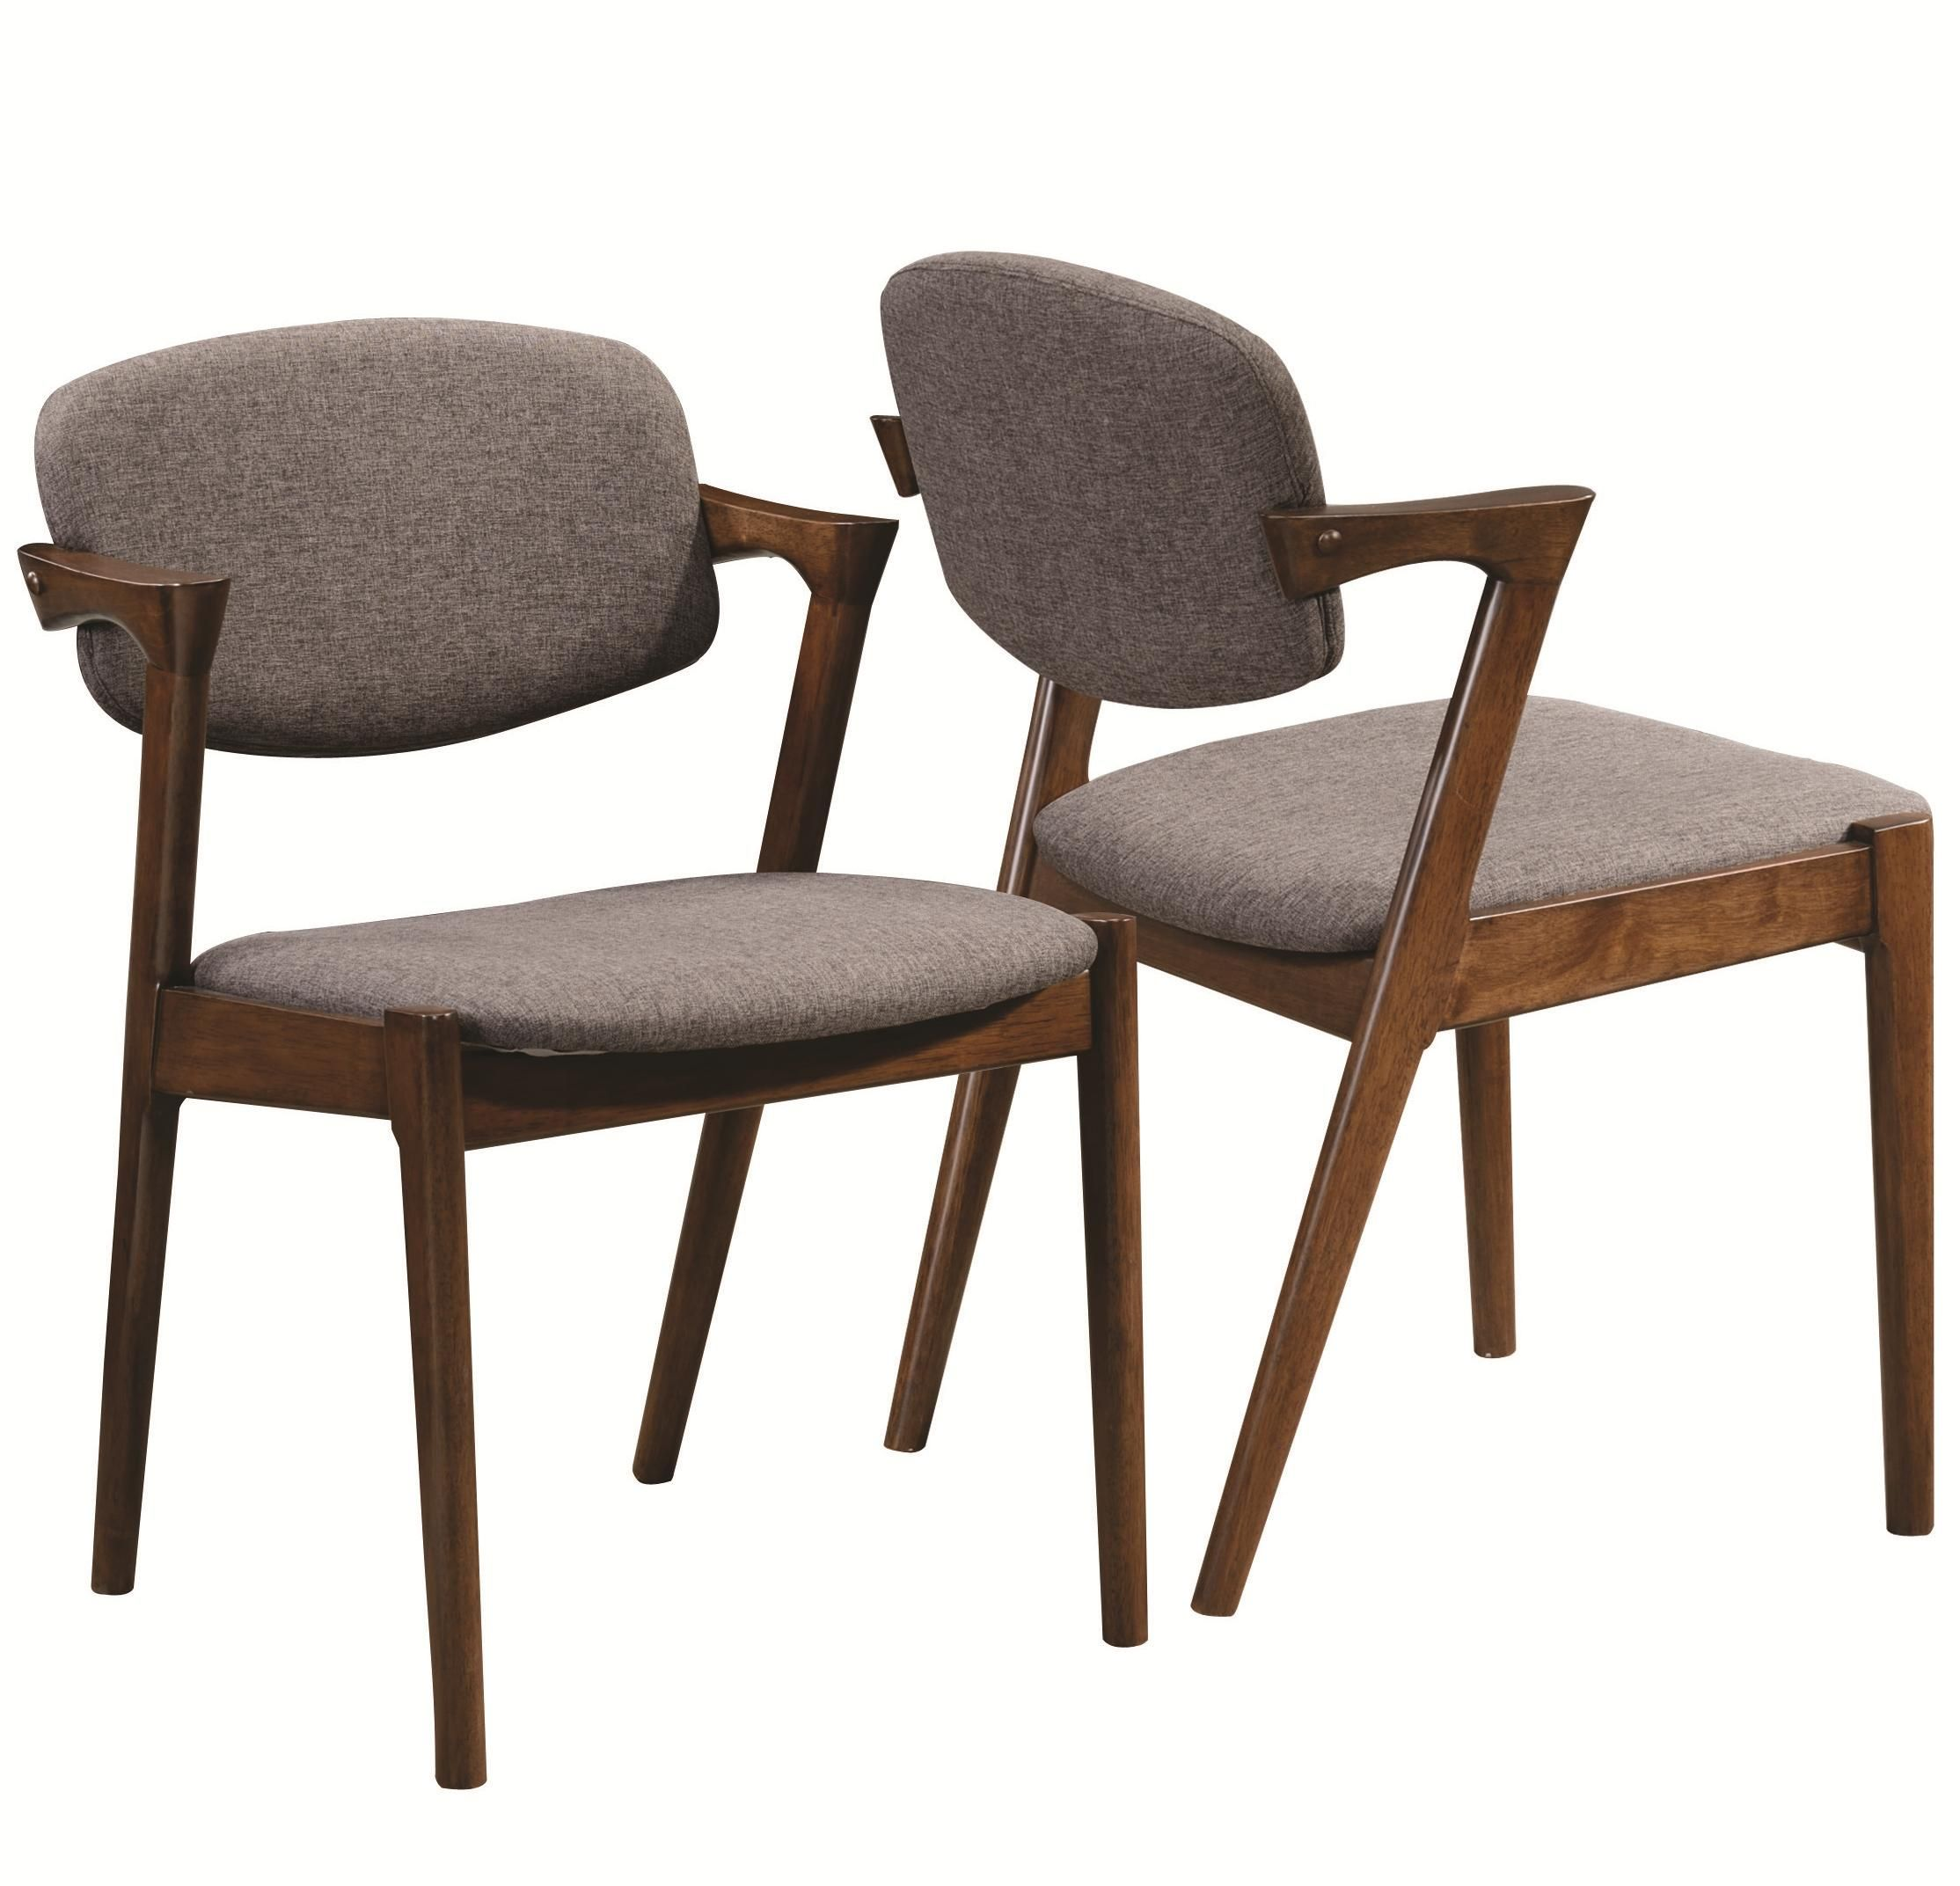 Coaster Malone Dining Chair 99 Each City Liquidators With Images Side Chairs Dining Midcentury Modern Dining Chairs Modern Dining Side Chairs